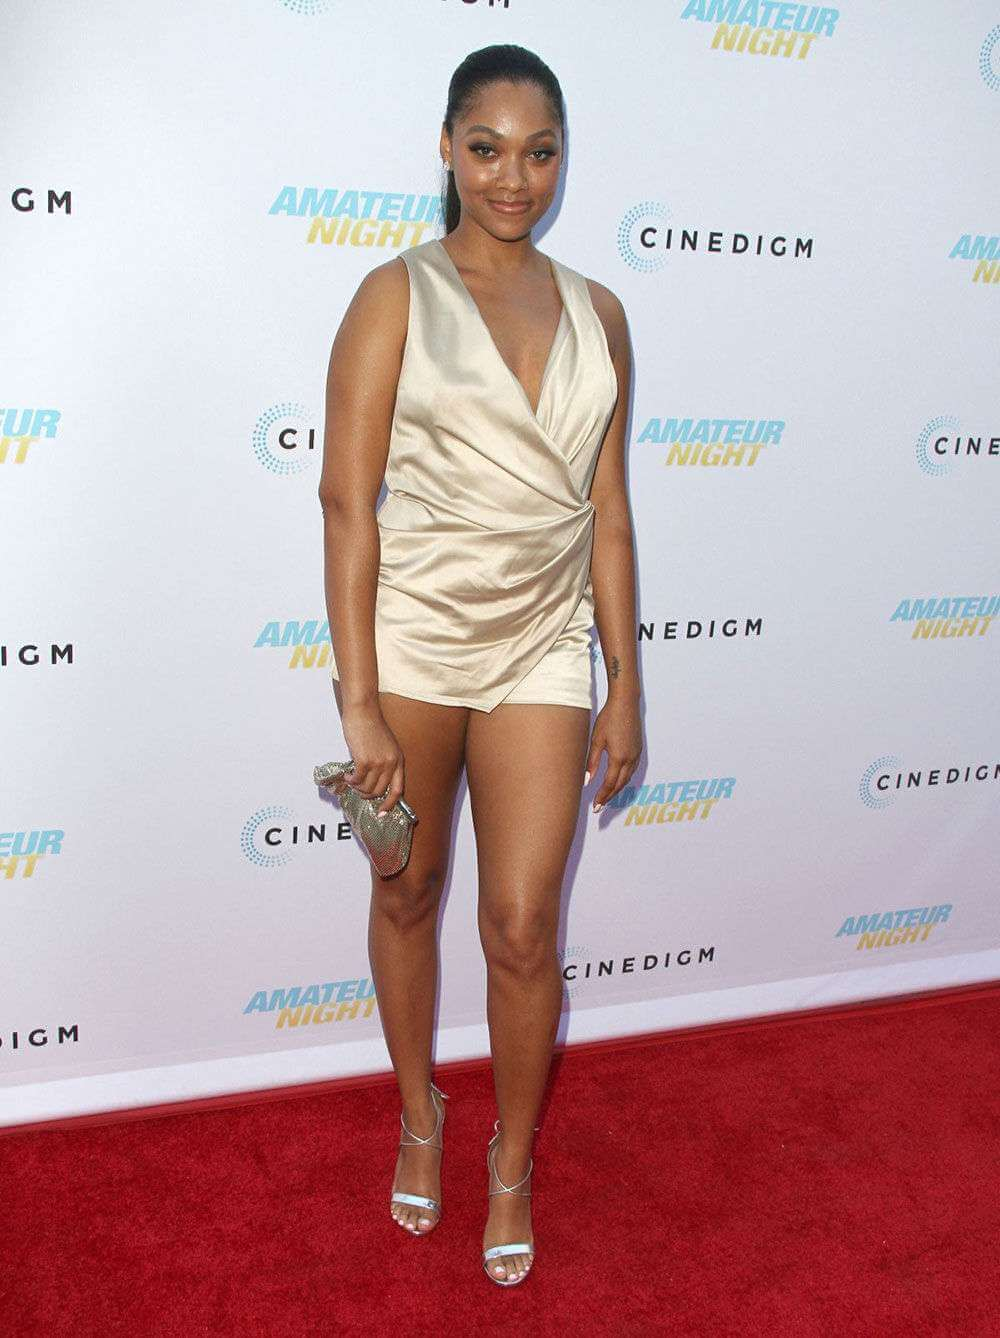 bria-murphy-amateur-night-premiere-hollywood-005